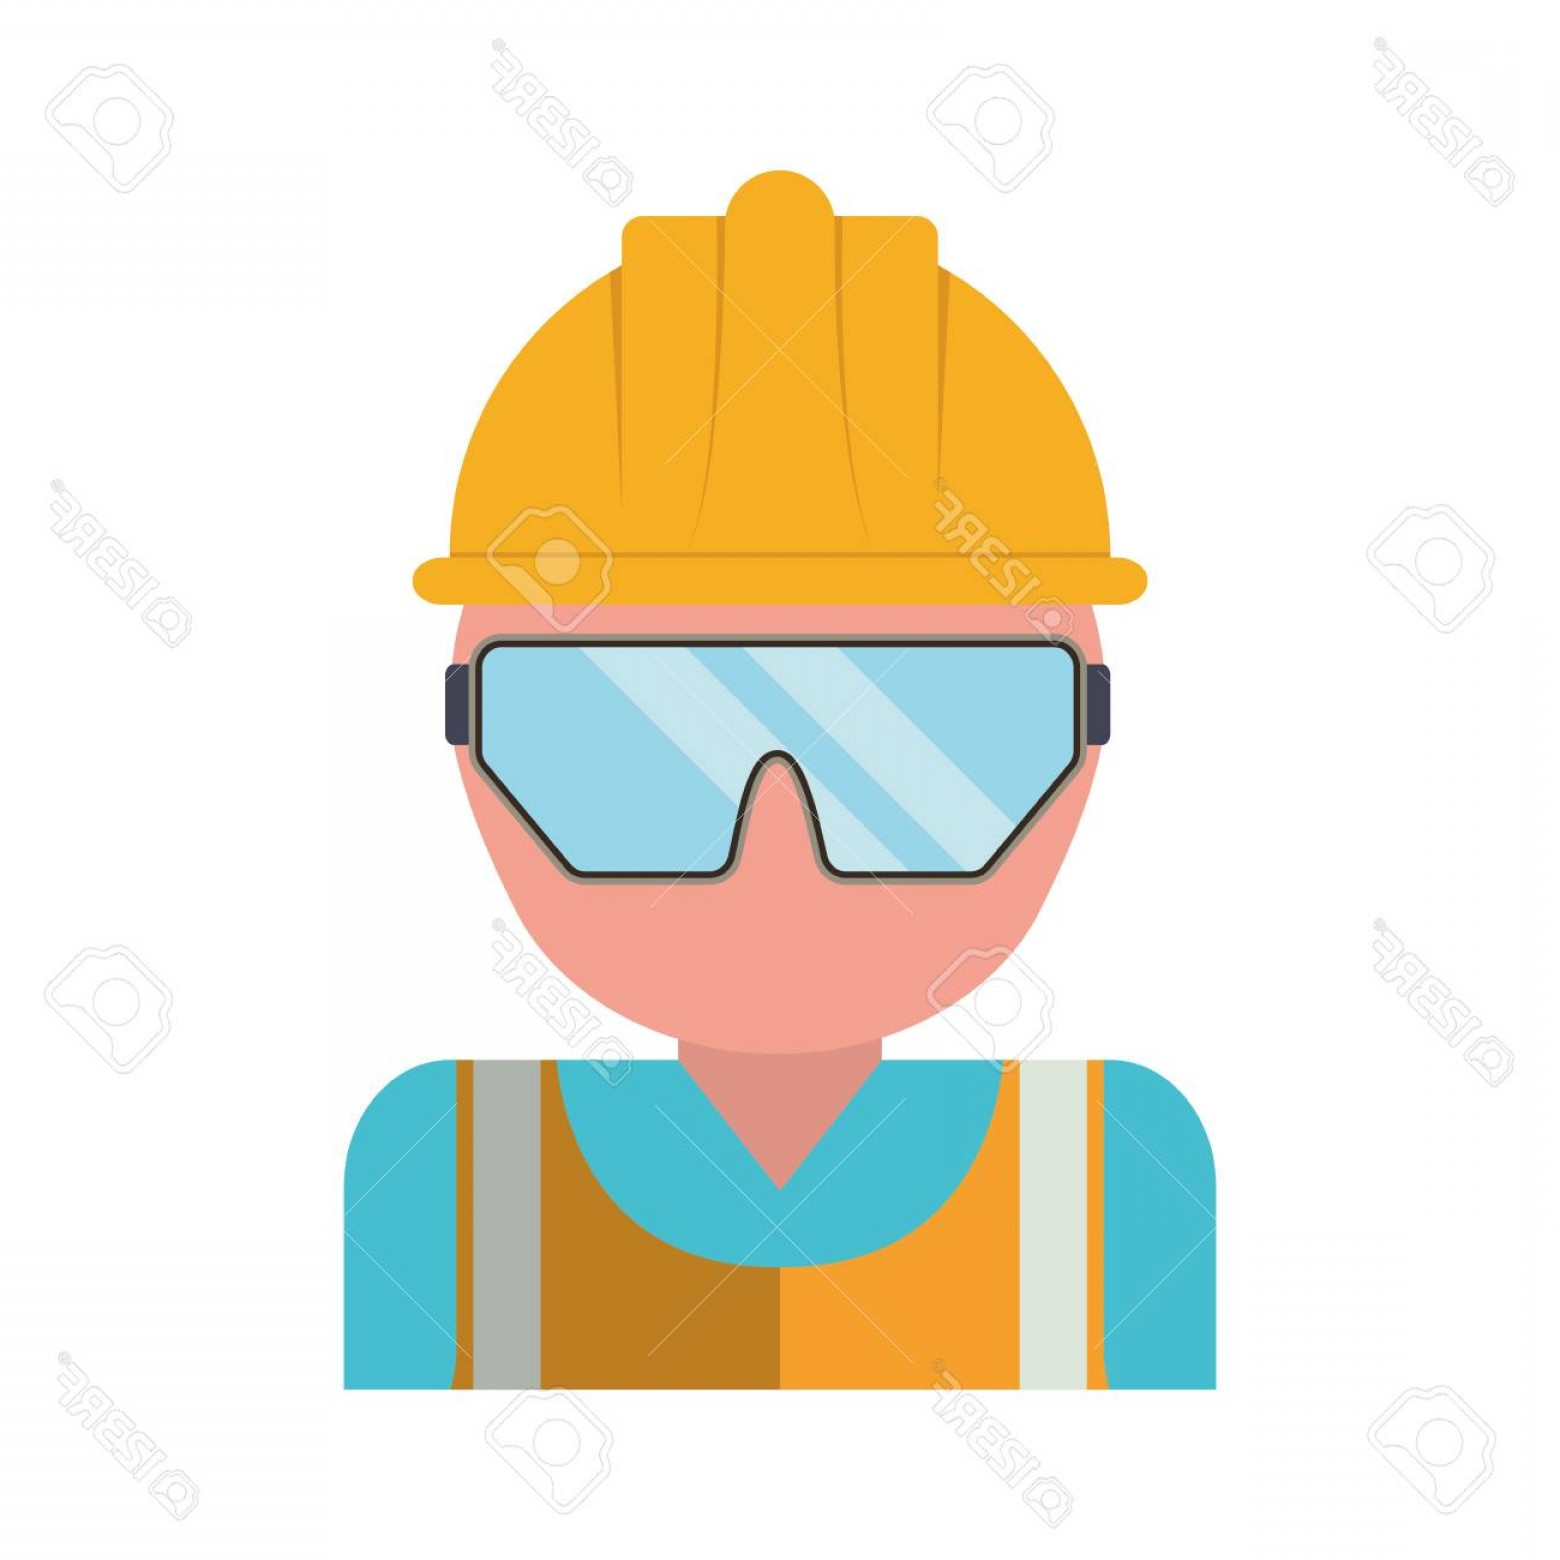 Construction Safety Goggles Vector: Photostock Vector Man With Safety Helmet And Goggles Icon Over White Background Industrial Security Concept Vector Ill